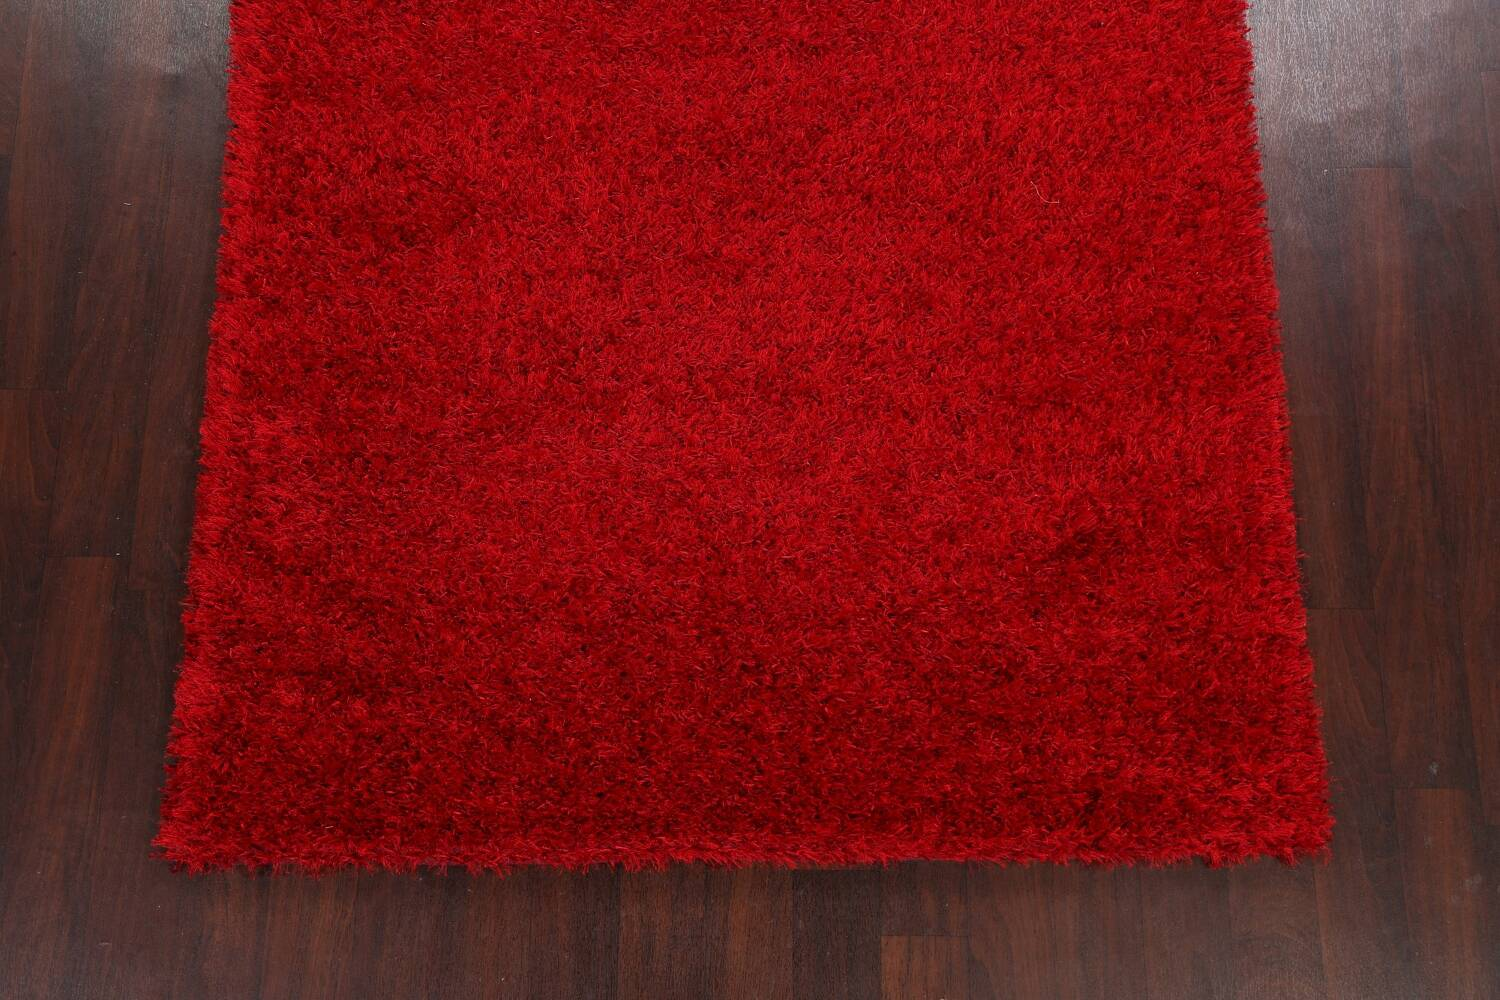 Red Plush Shaggy Area Rug 5x7 image 8